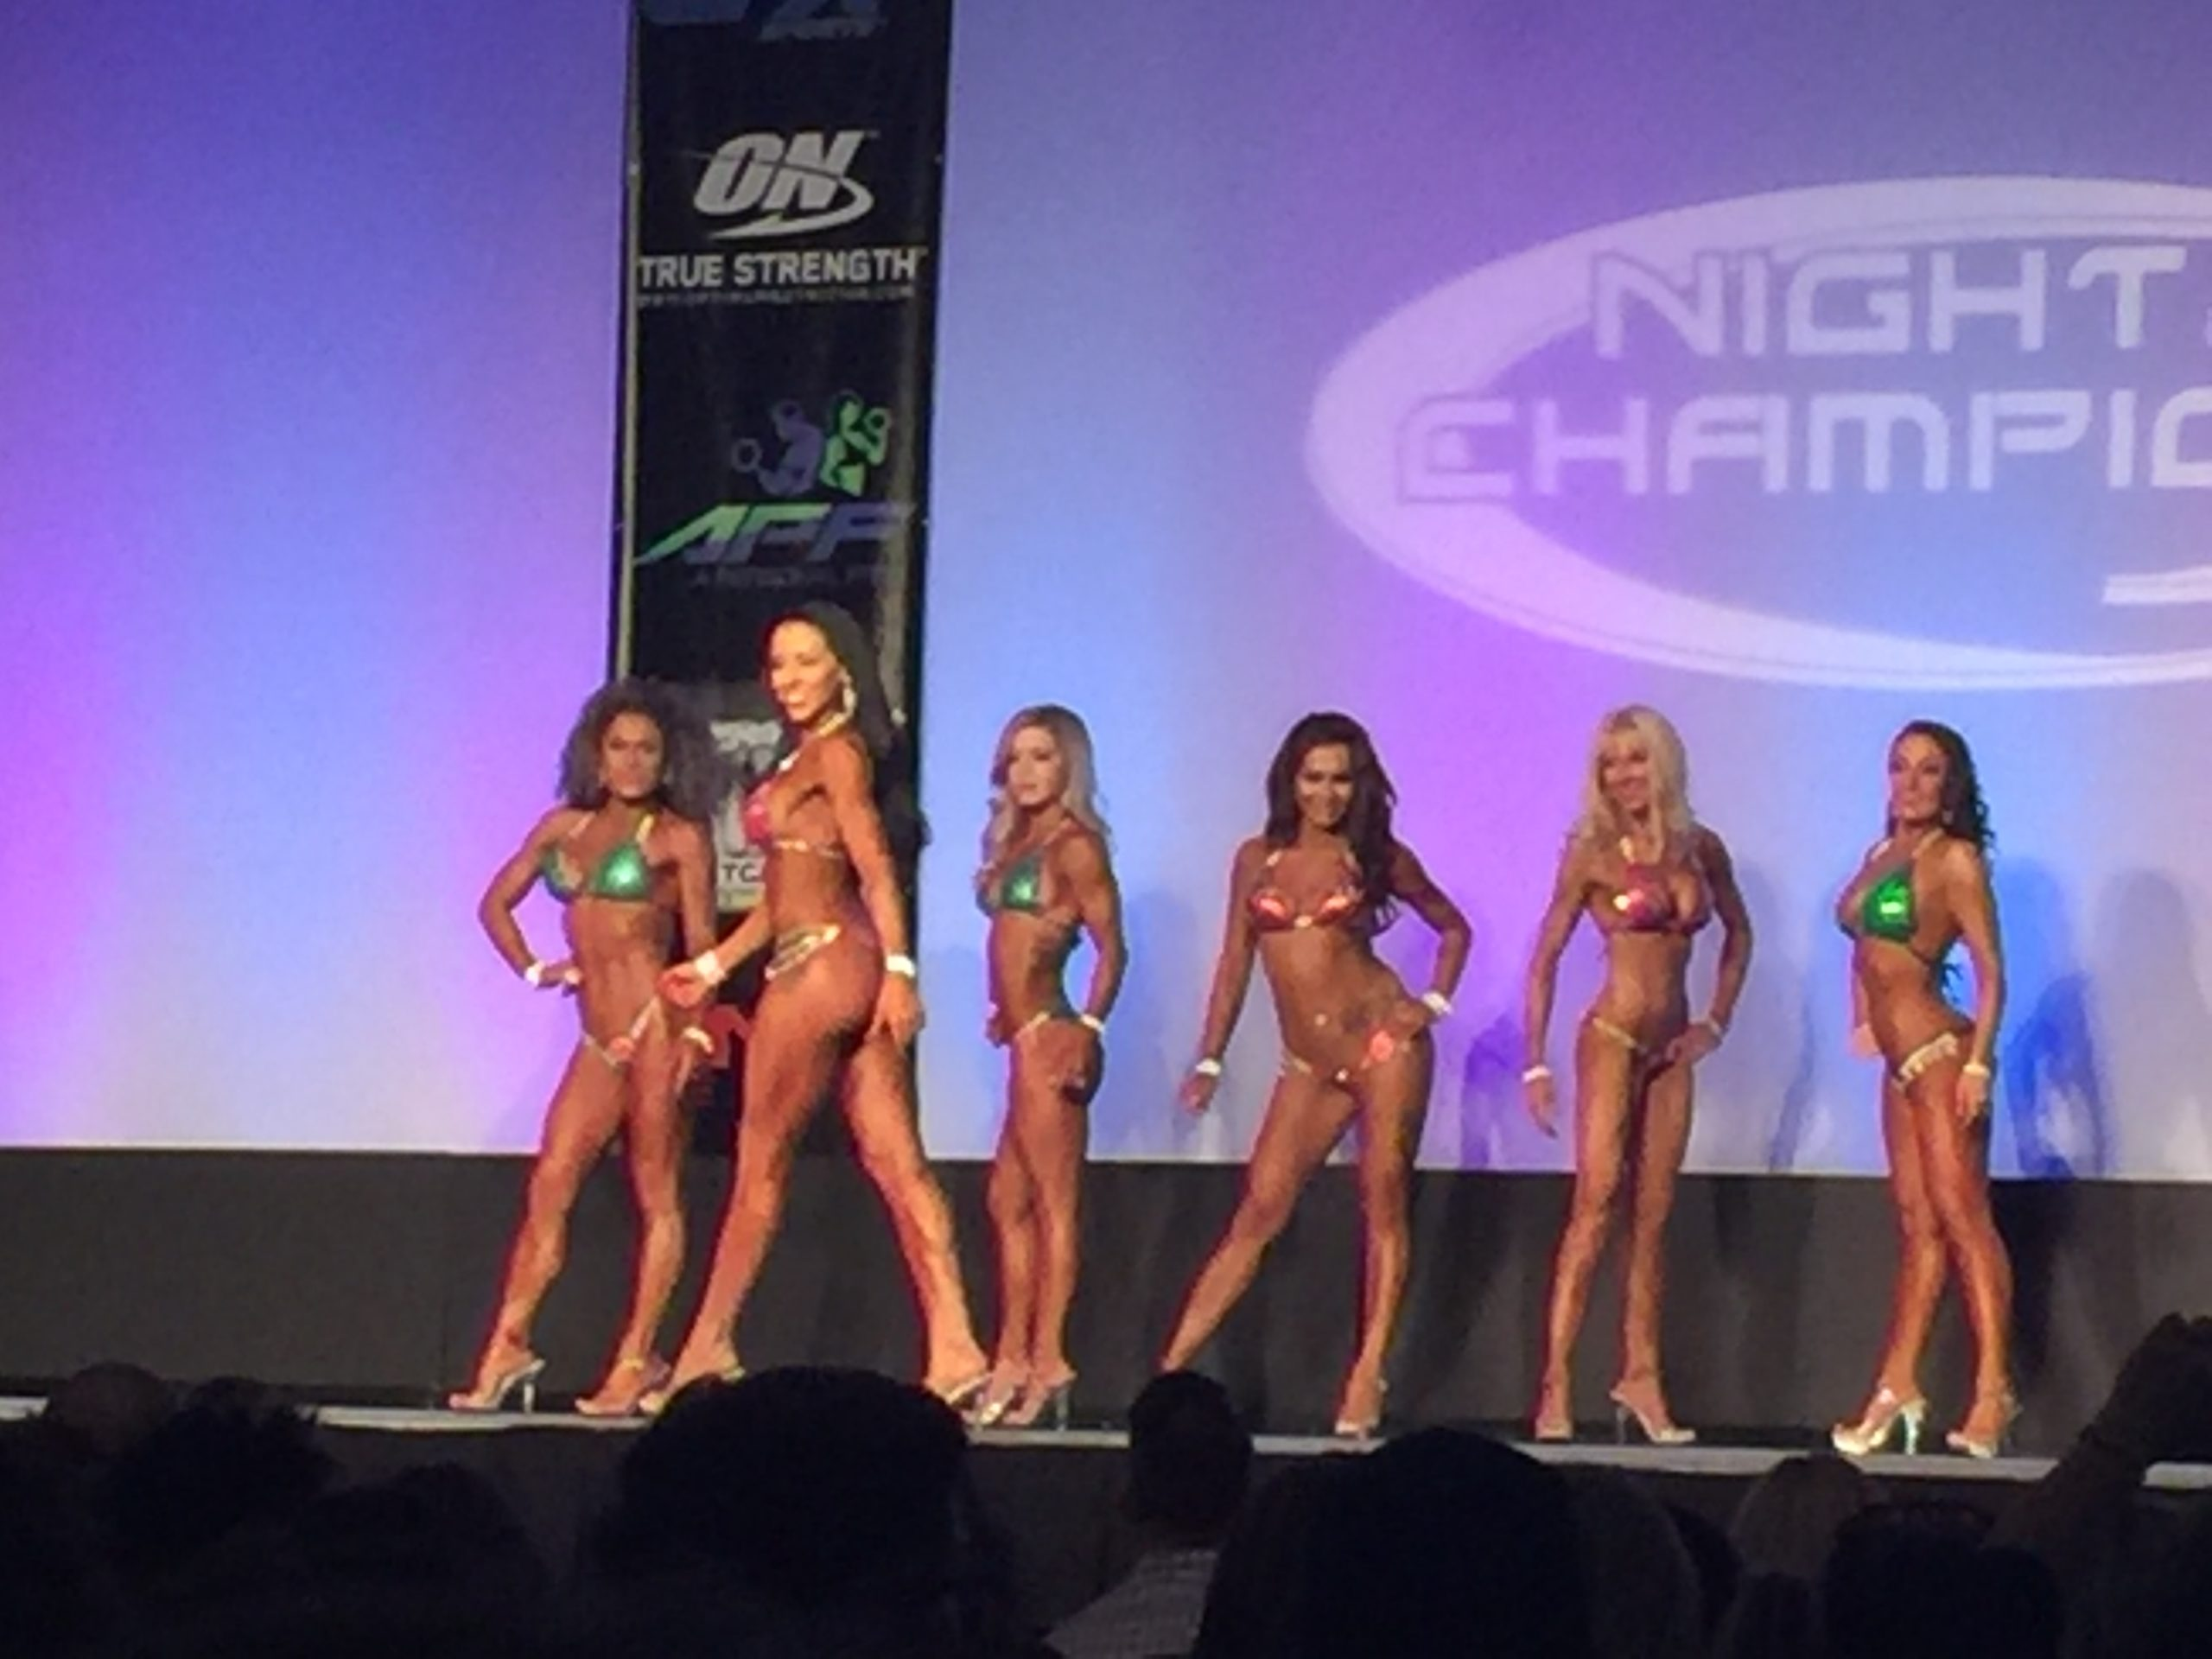 PDX Ladies Compete in the – Night of Champions